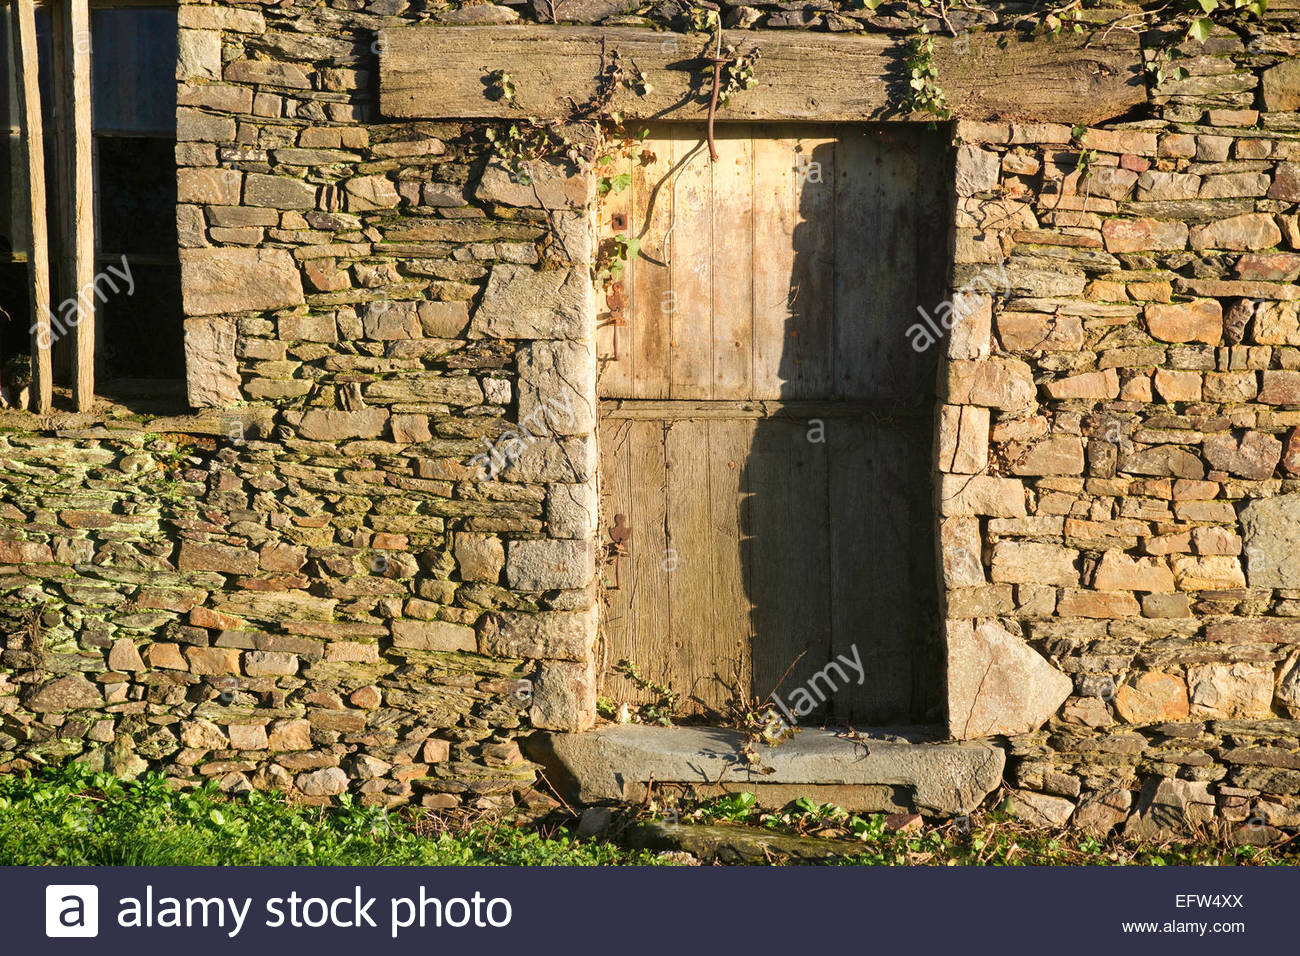 Brittany Farmhouse Natural Stone Wall Door Nobody Rustic Rural Entrance Doorway France Europe French